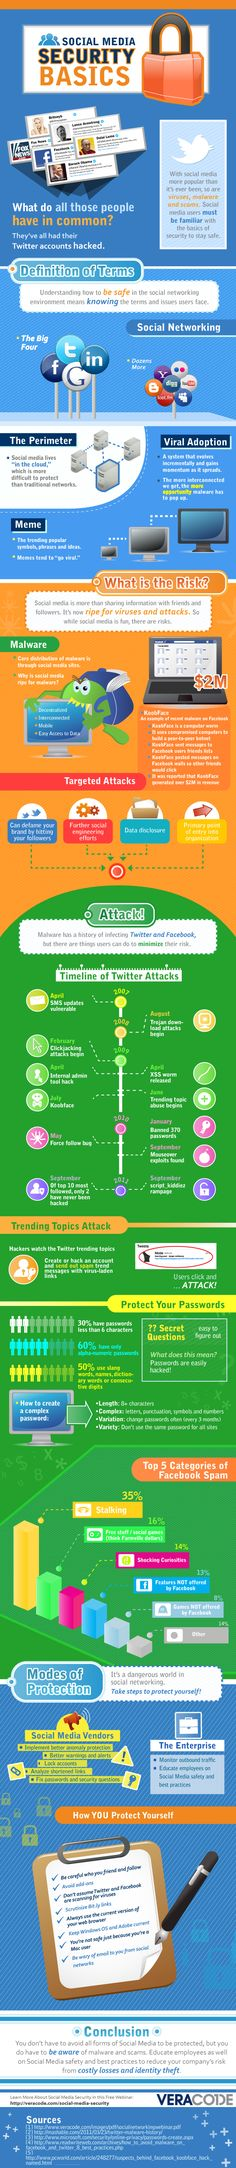 Social Media Security Infographic